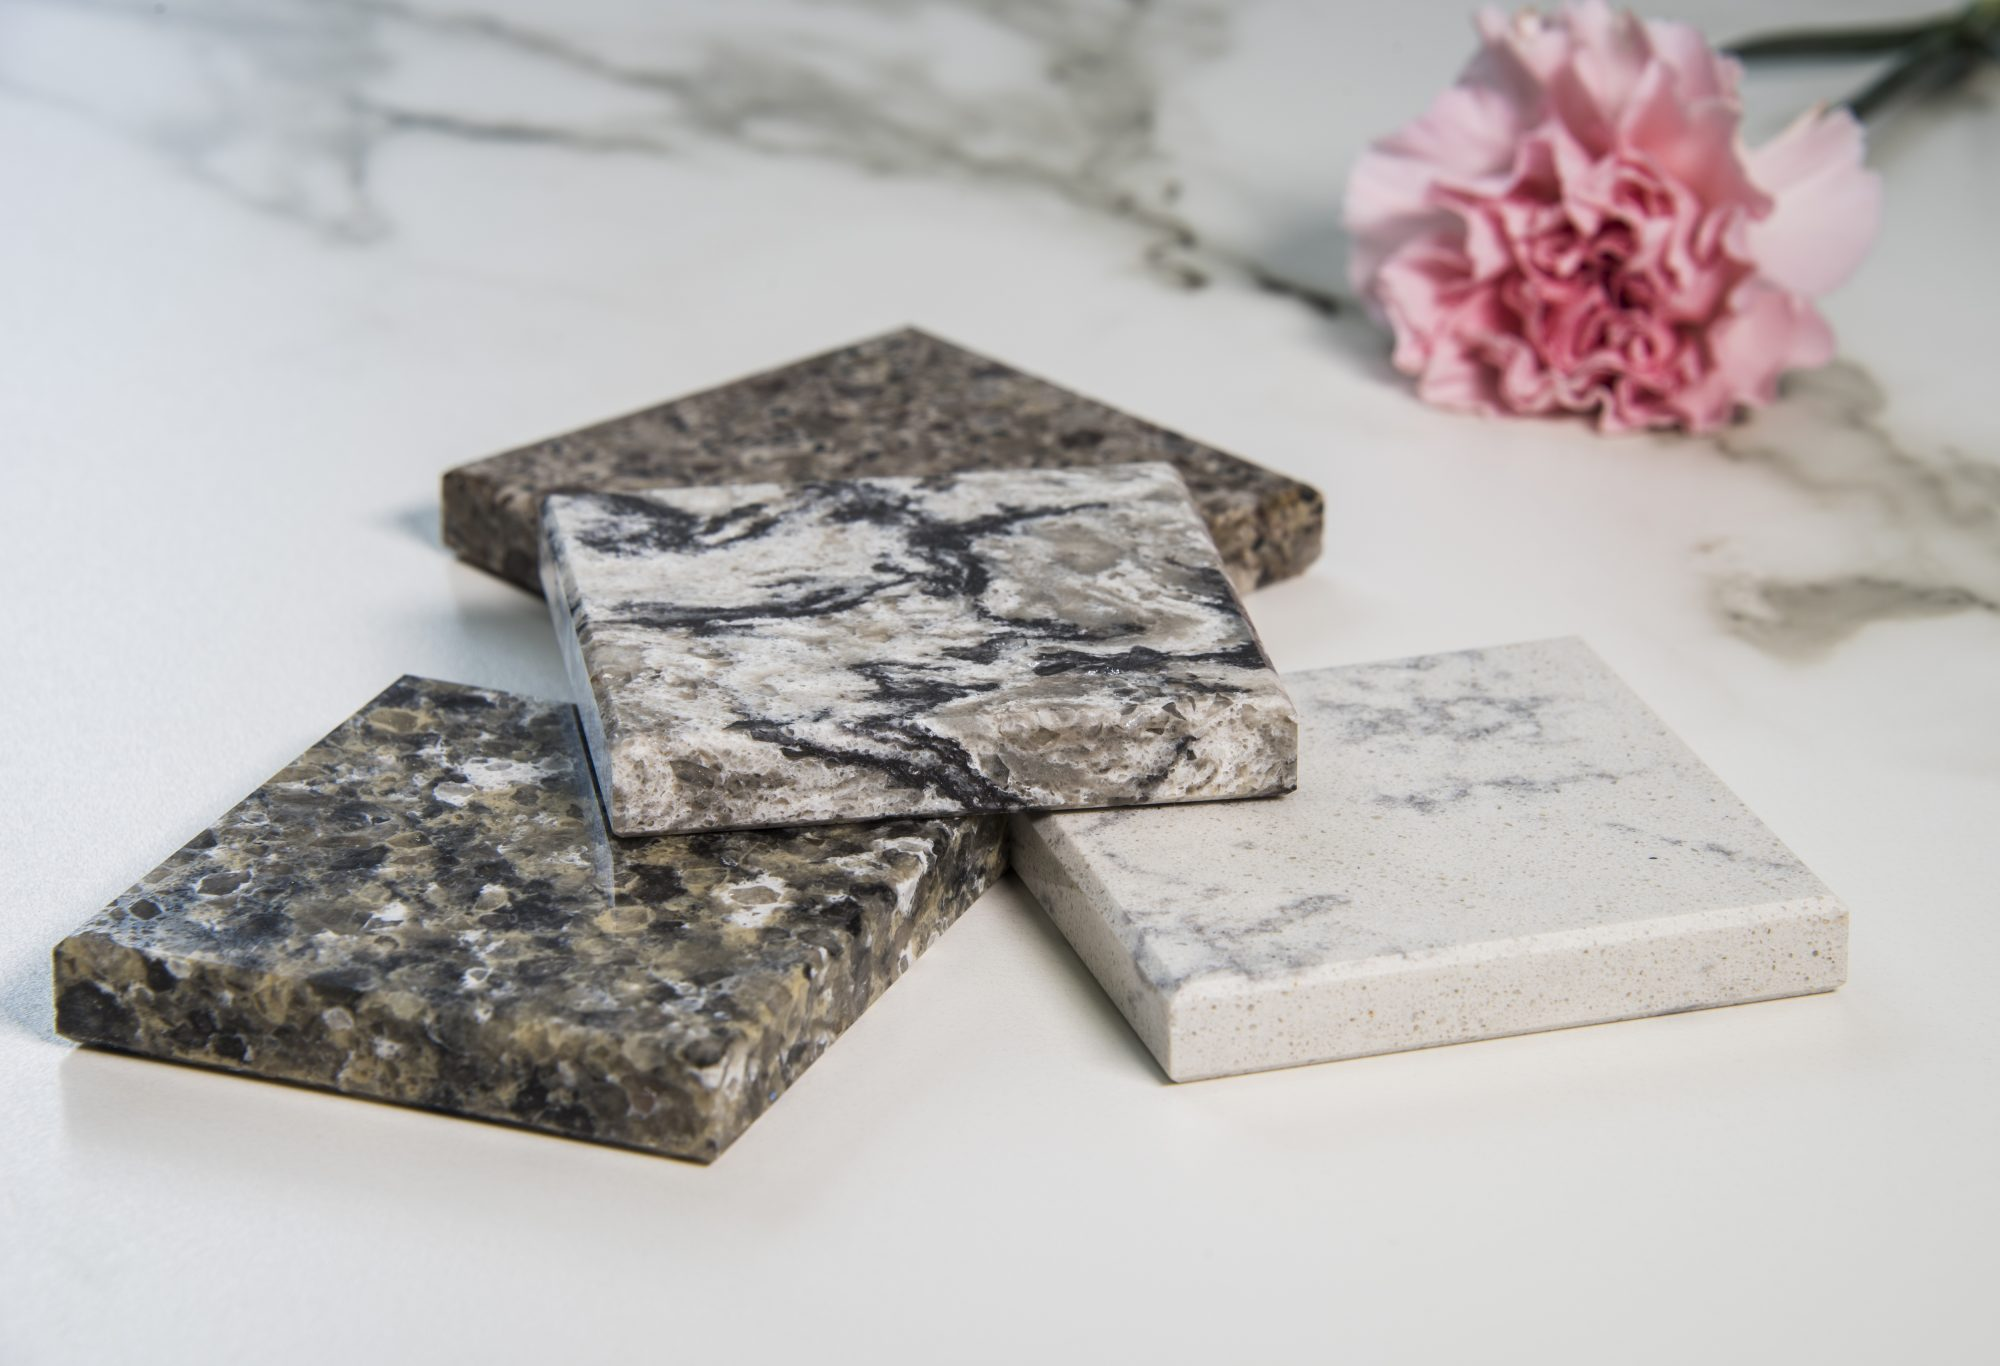 Granite Counter Samples